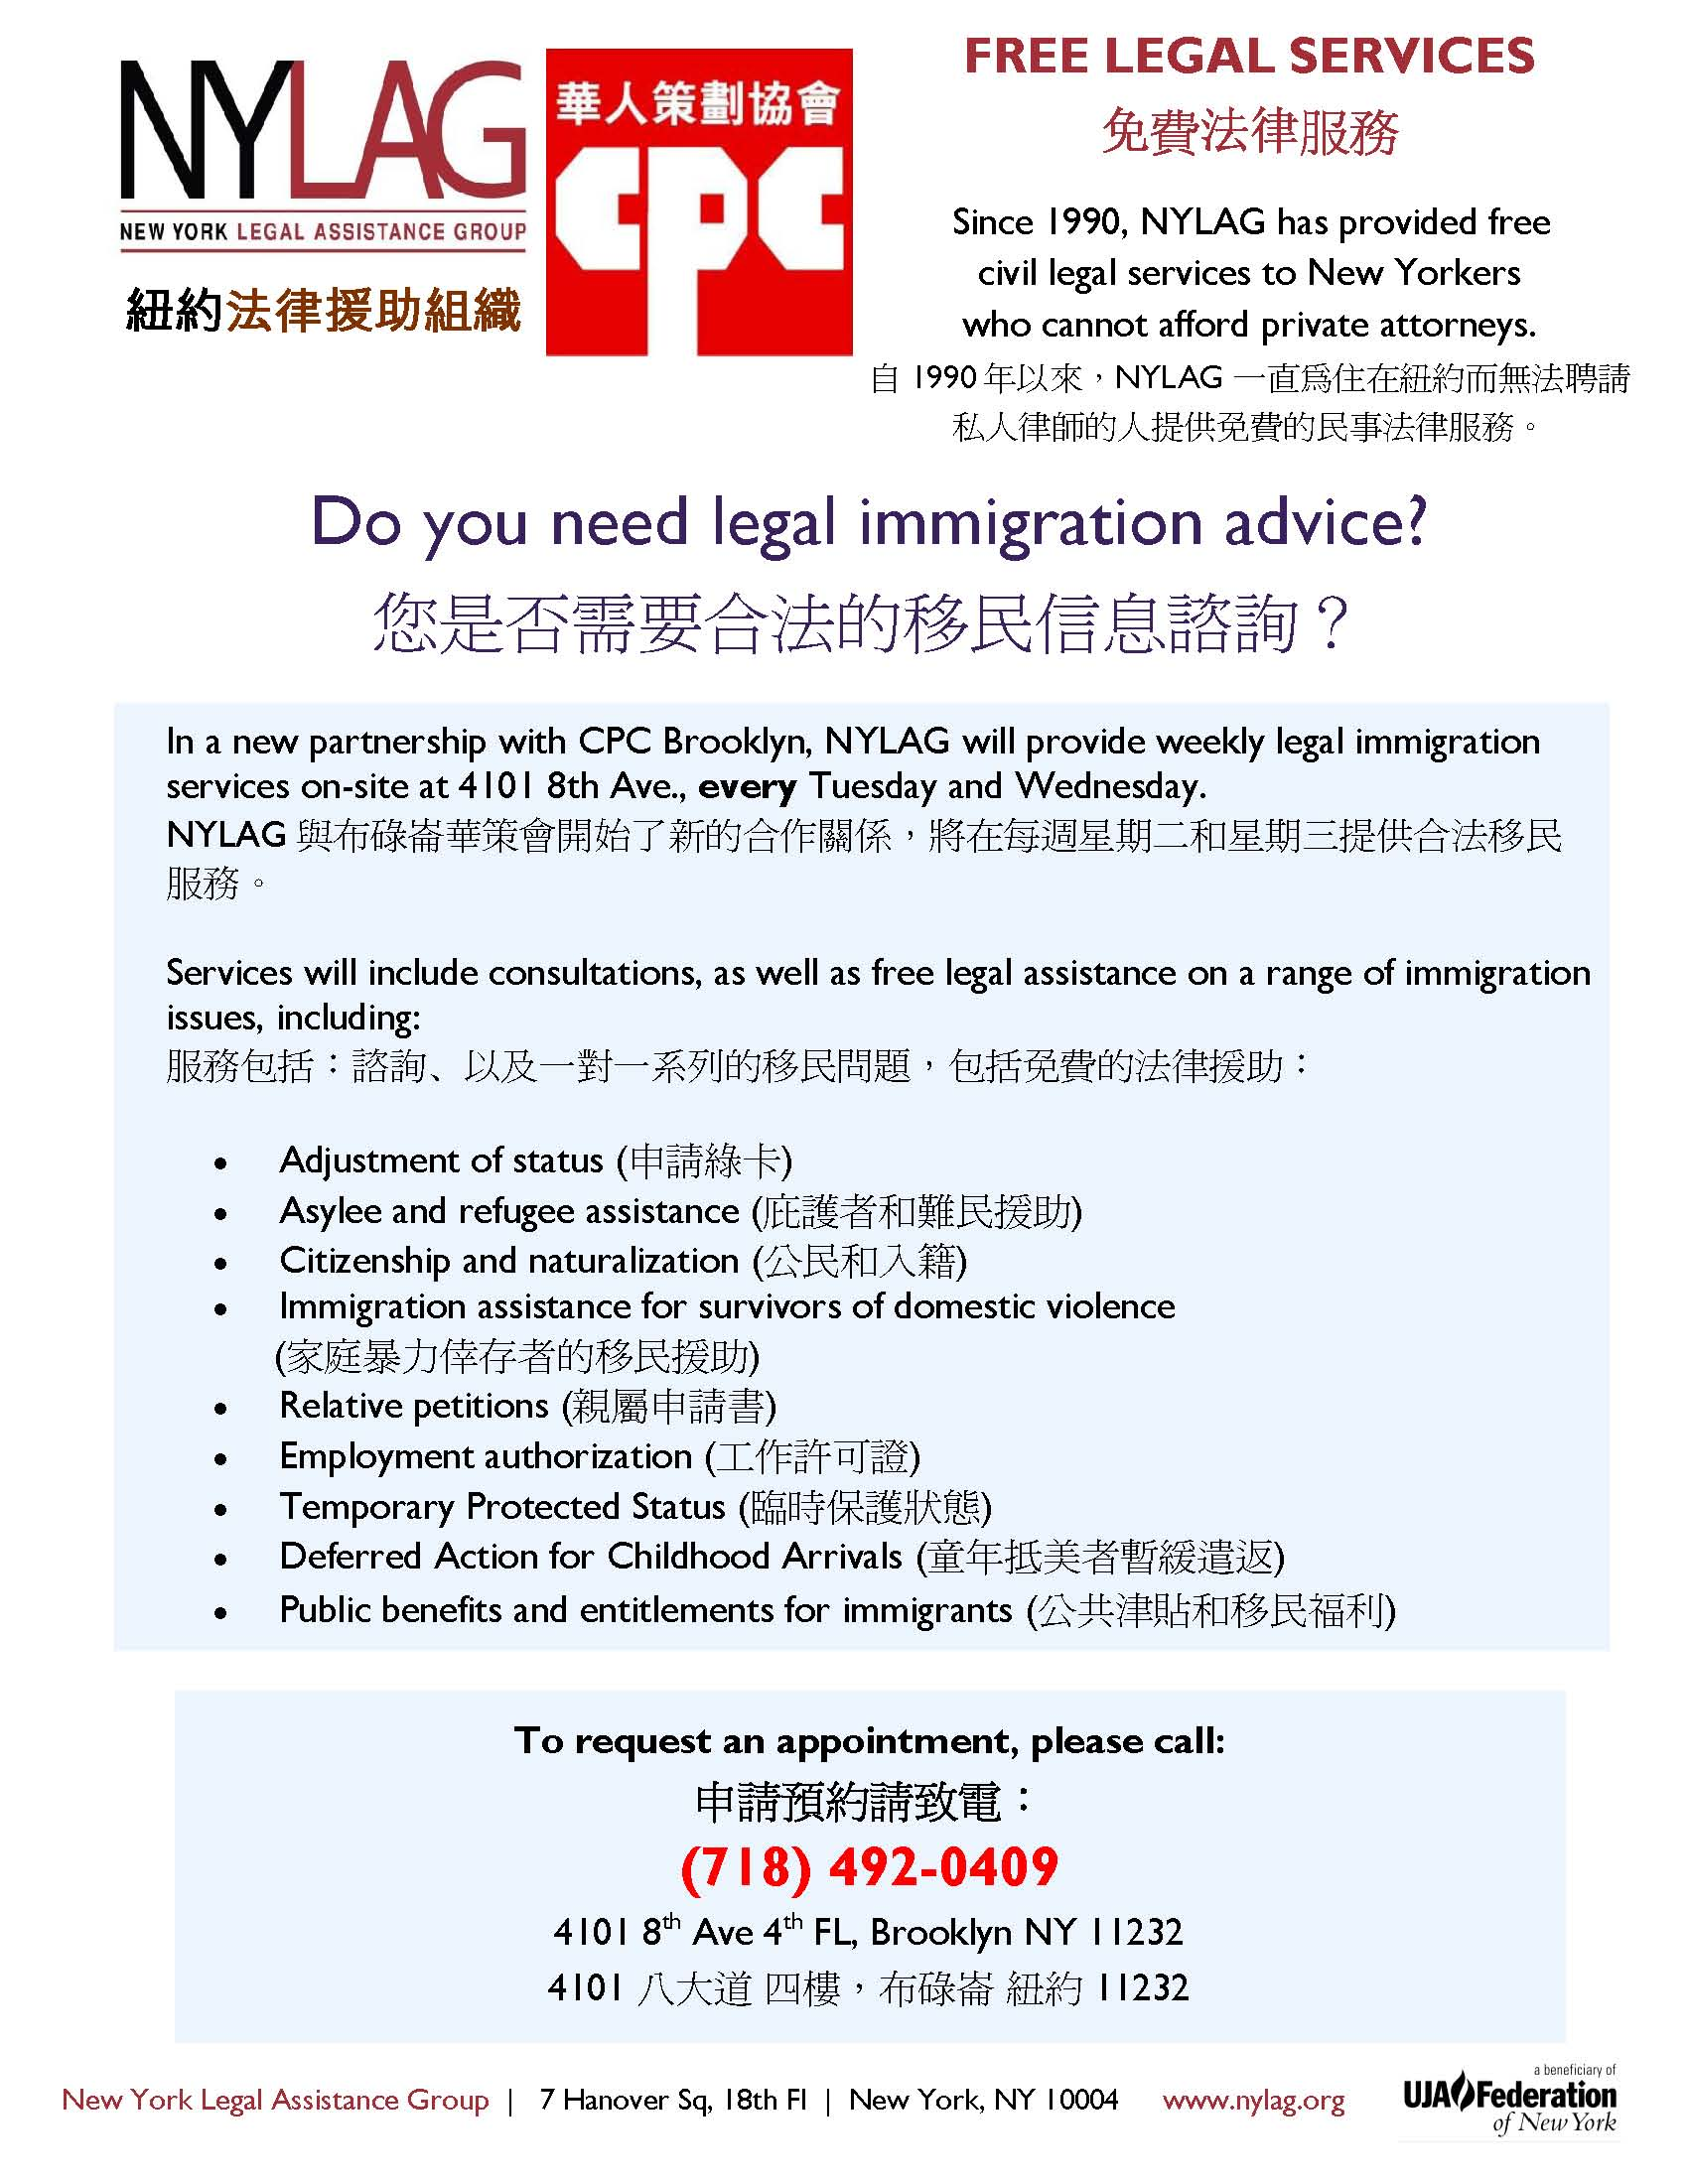 Do you need legal immigration advice?